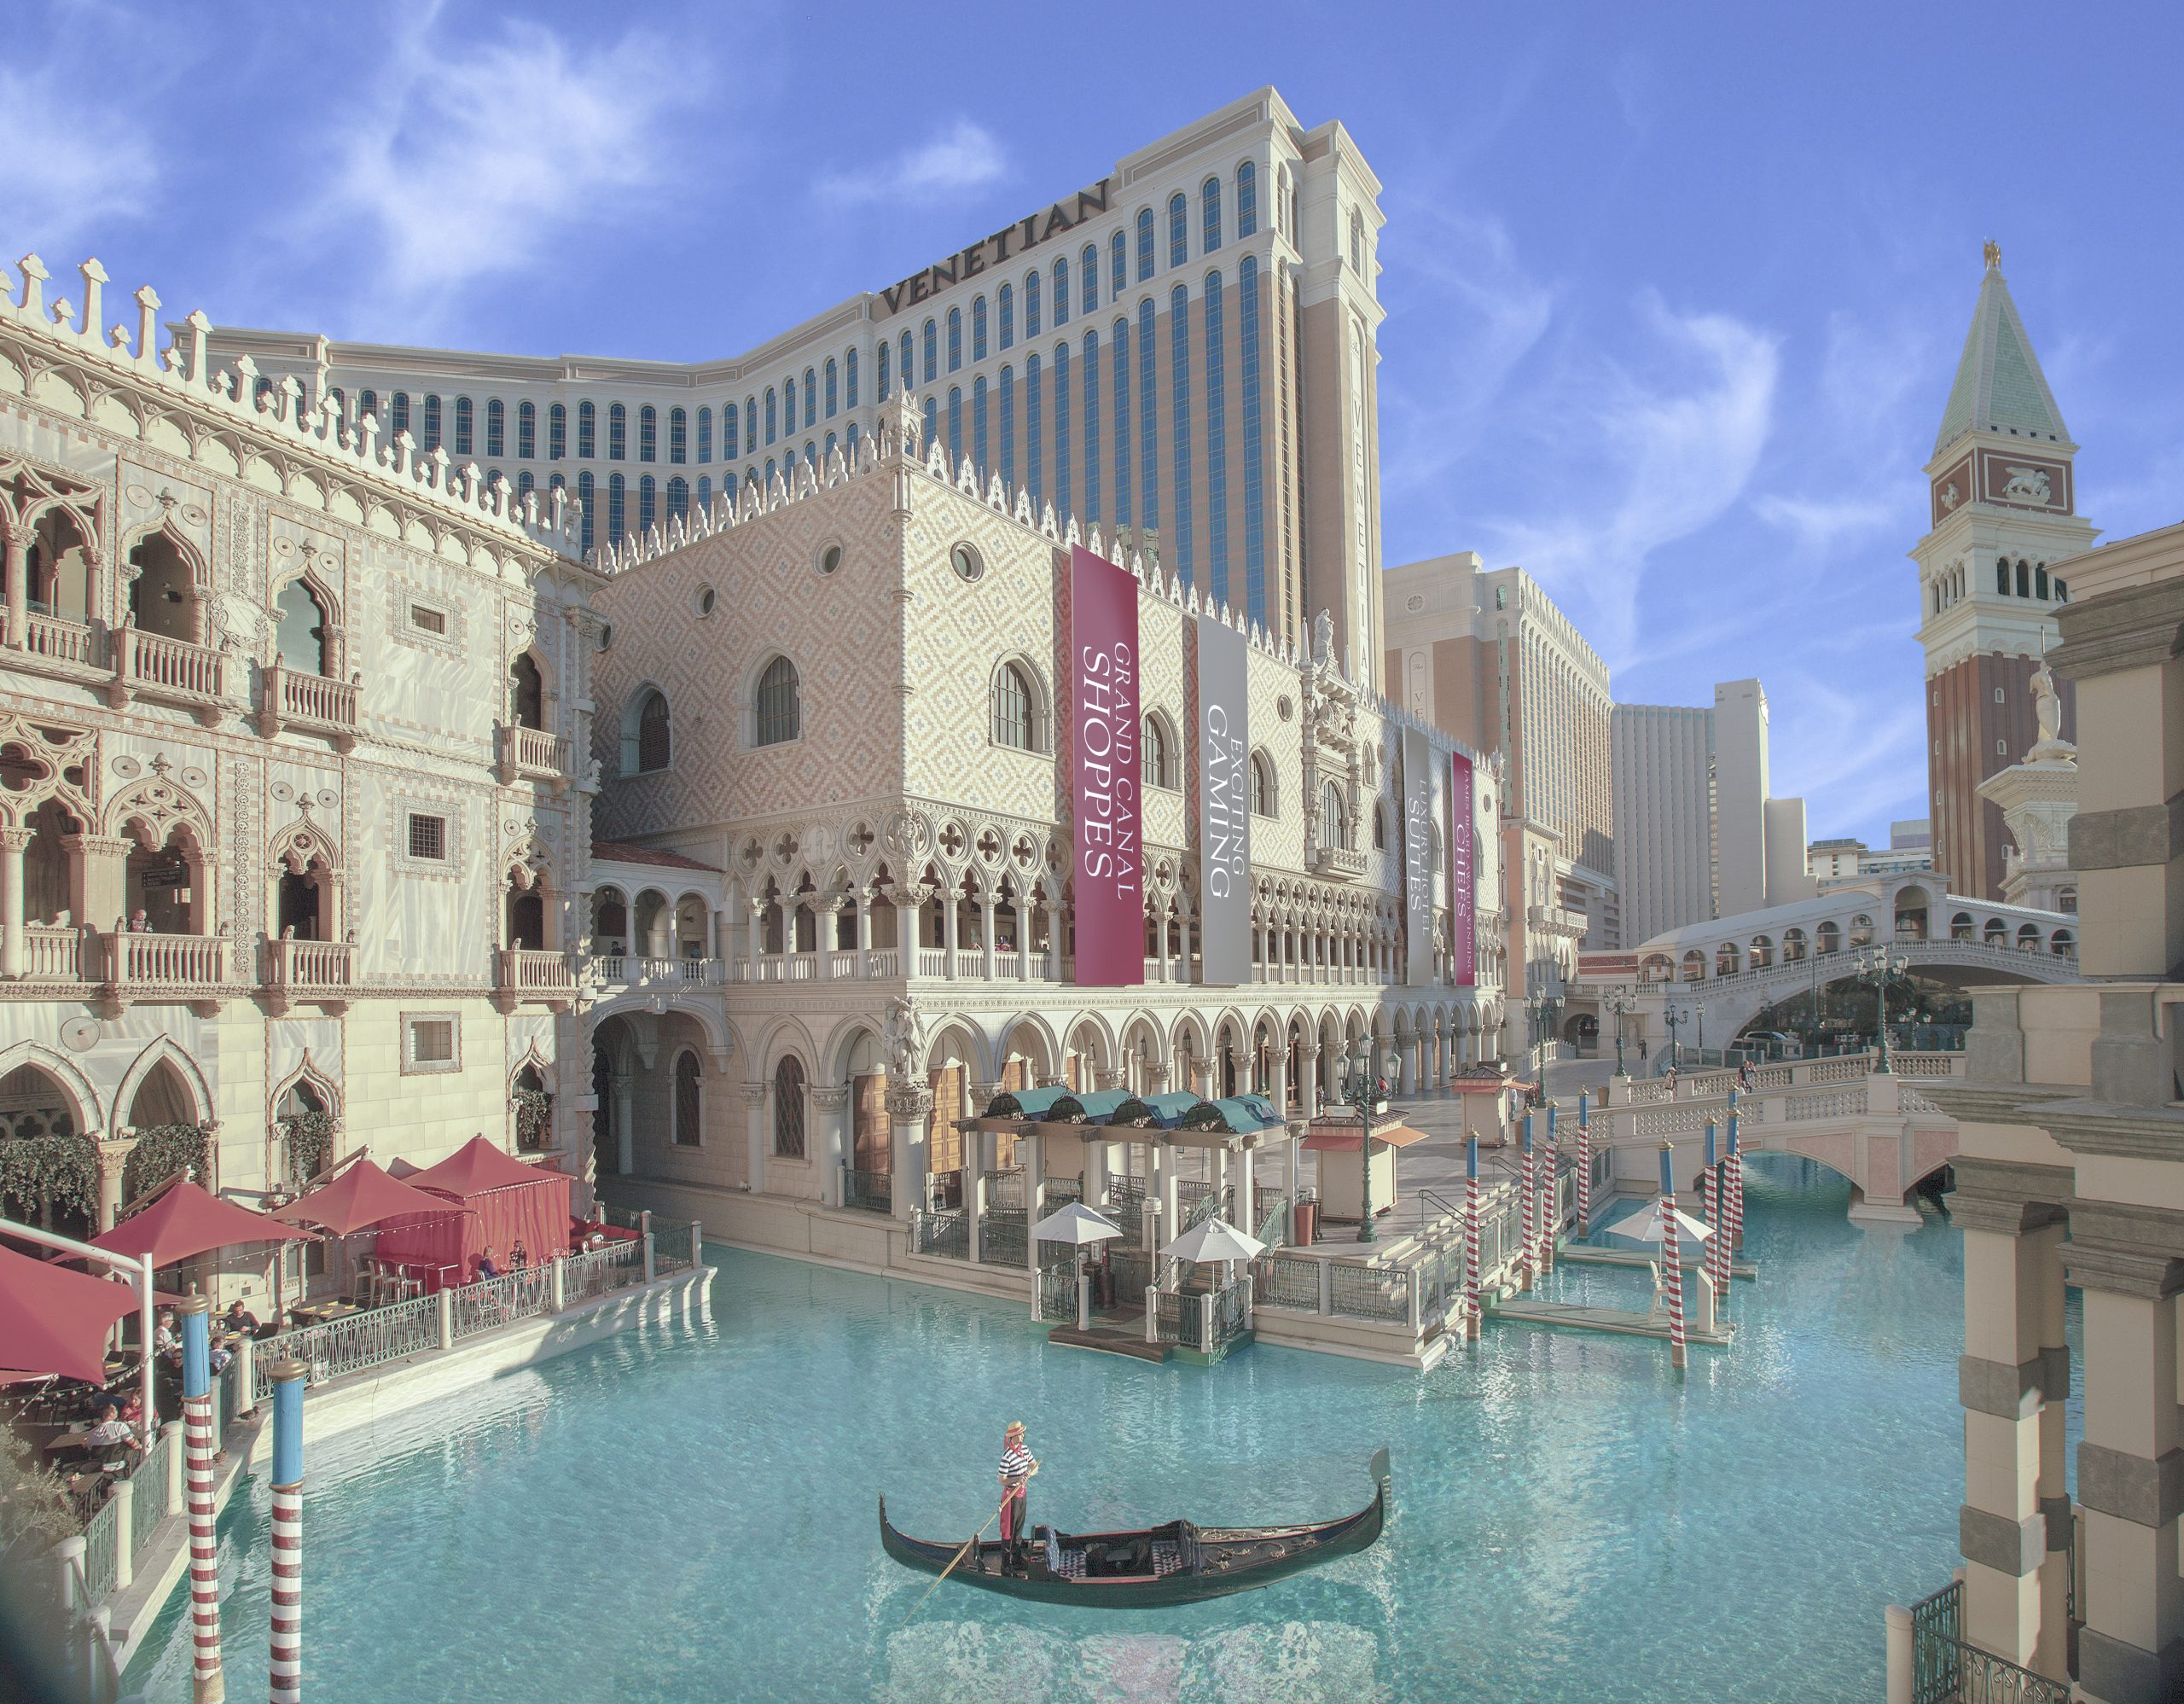 https://anysizedealsweek.com/wp-content/uploads/2020/02/The-Venetian-Resort-Las-Vegas-scaled.jpg